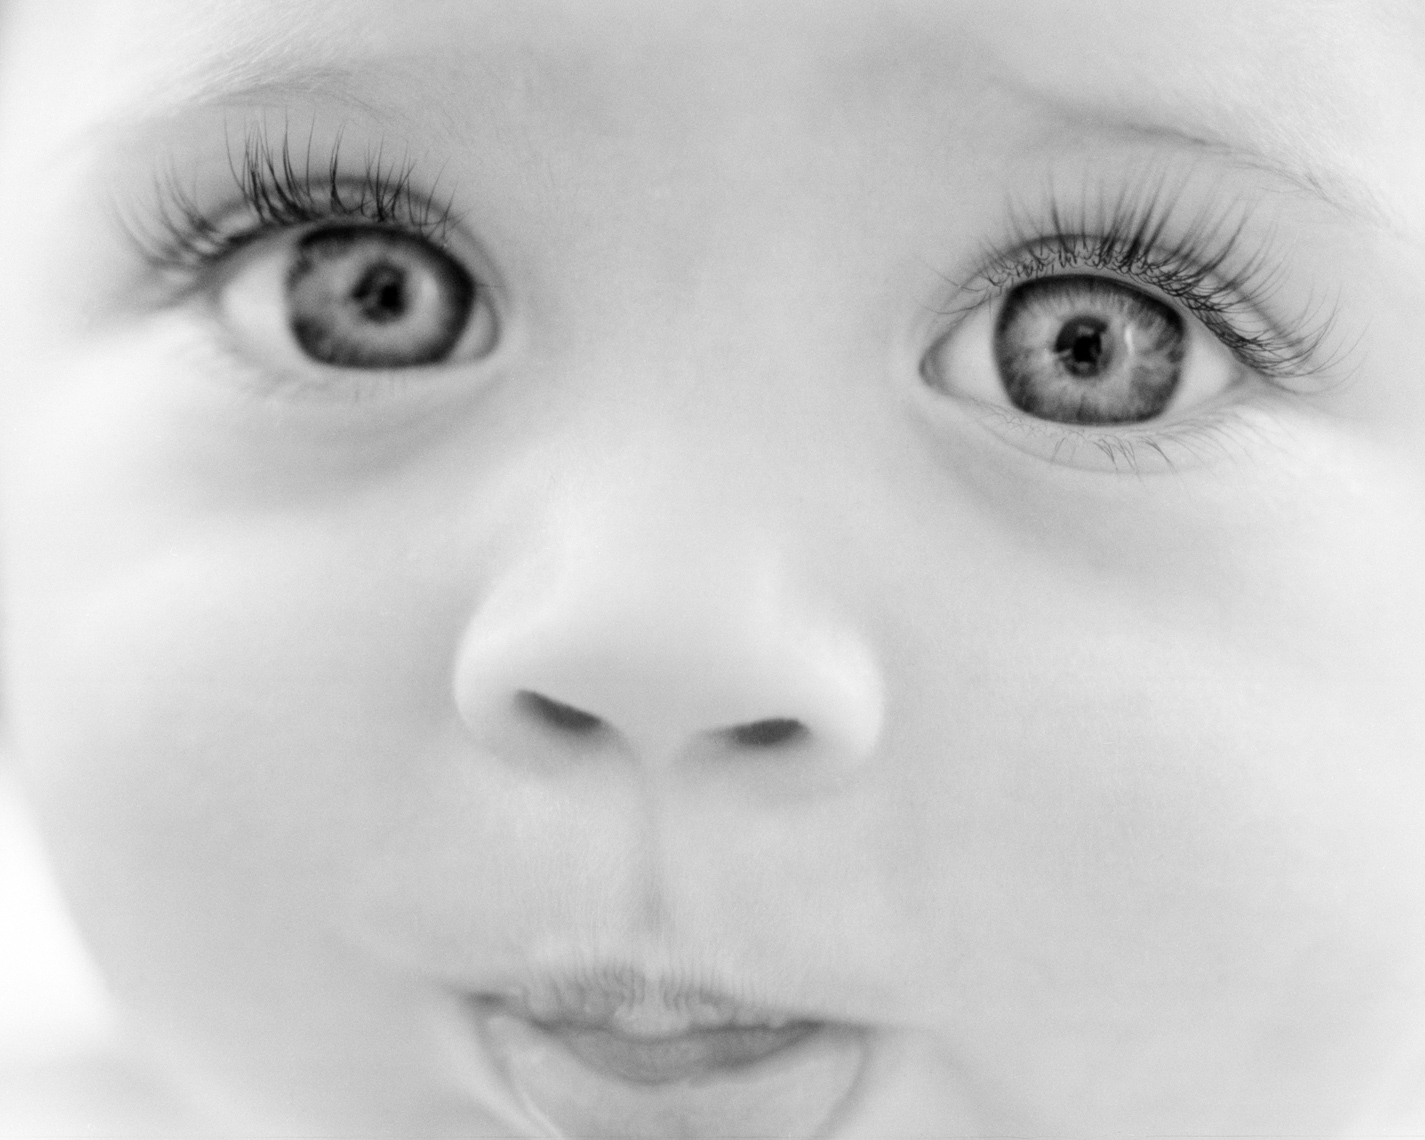 Black And White Baby Portrait | Tosca Radigonda Photography